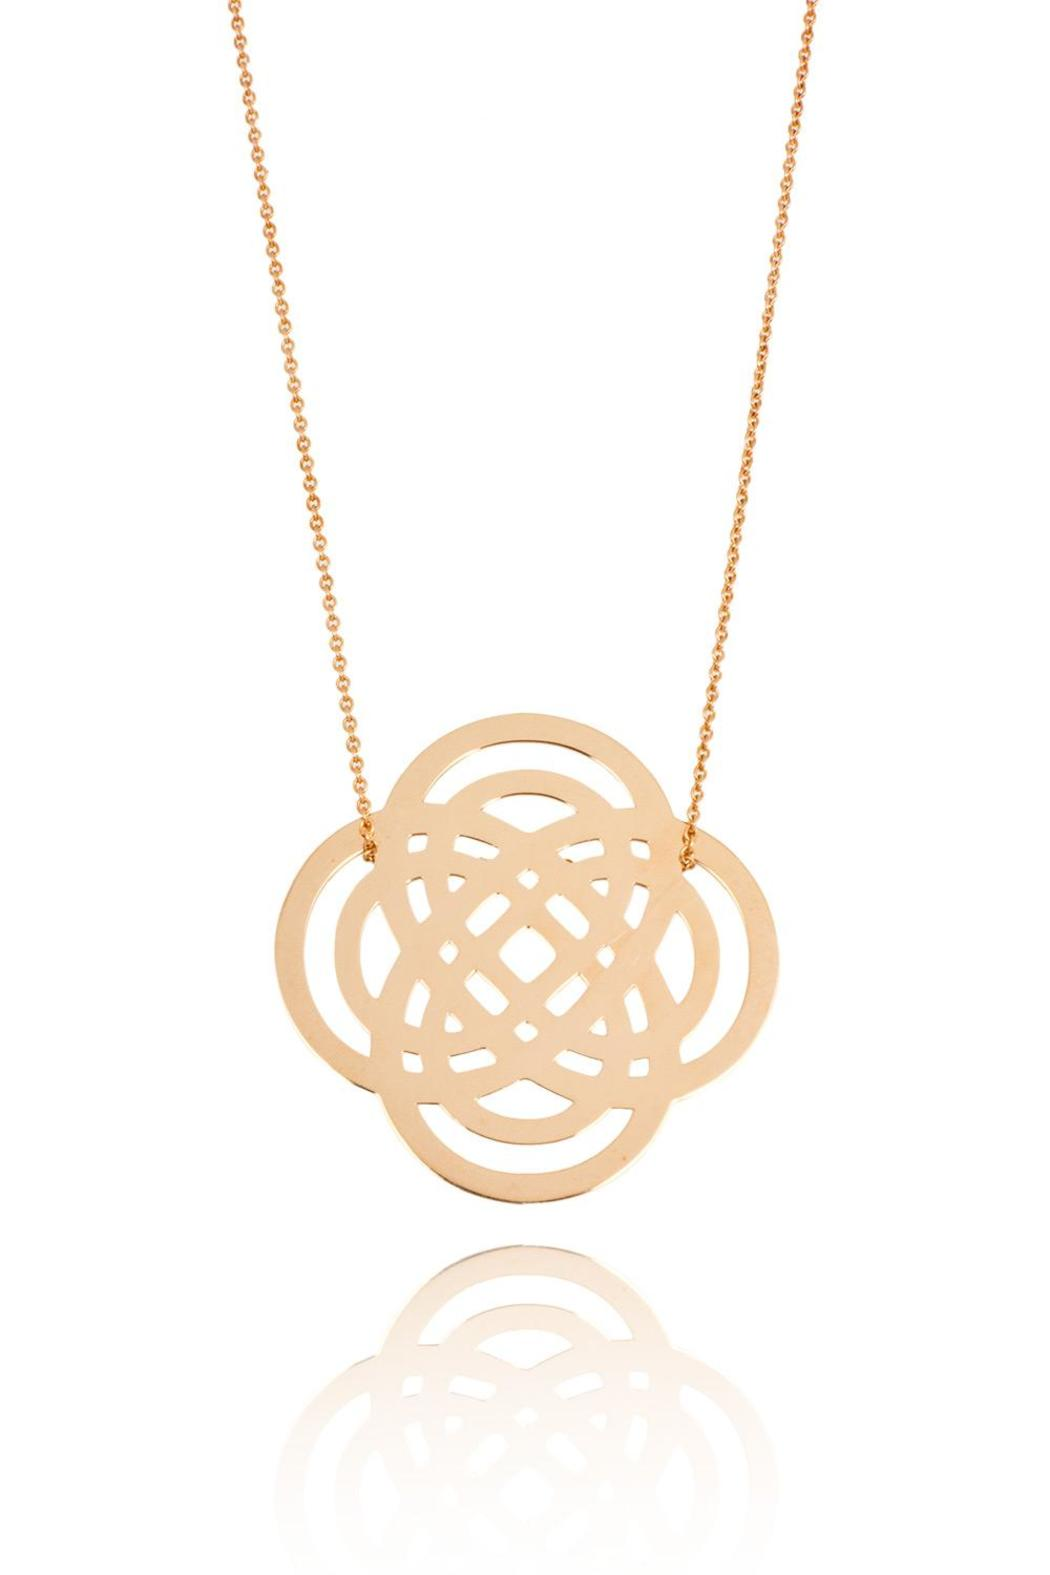 jewellery simons en yellow accessories golden women necklaces purity s geo necklace pendants shop